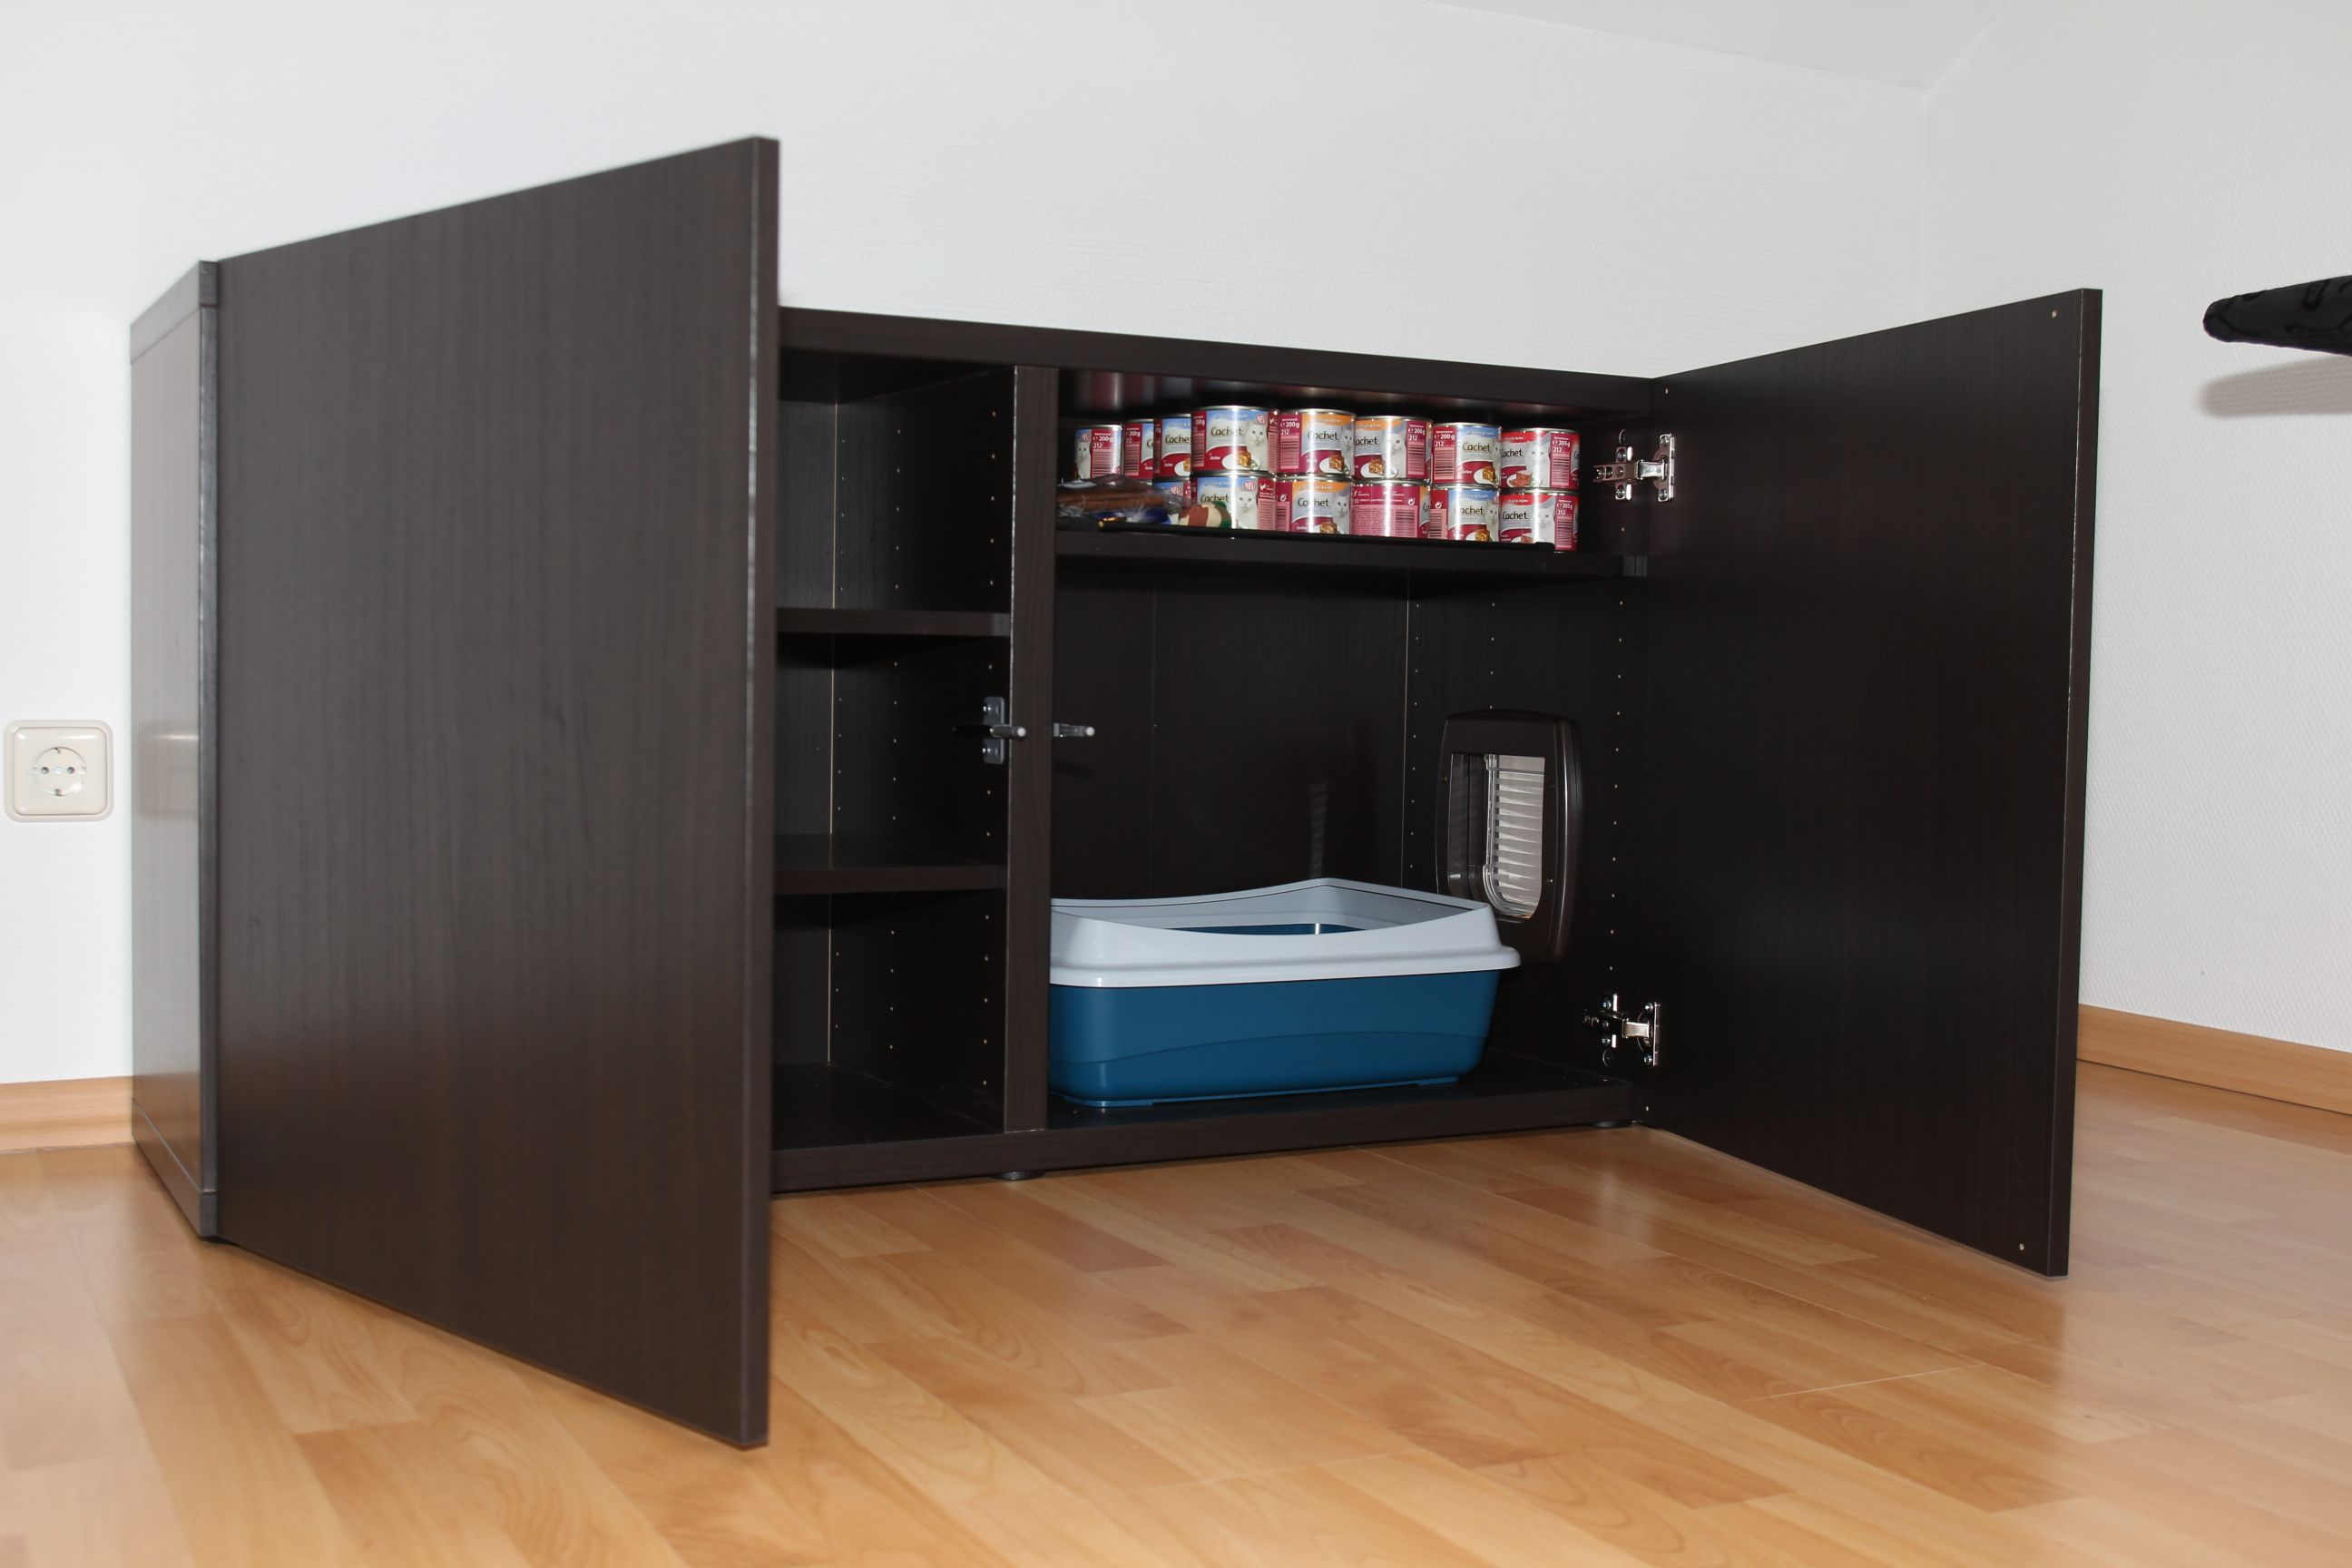 anleitung katzenklo im ikea schrank verstecken do it yourself katzenforum. Black Bedroom Furniture Sets. Home Design Ideas